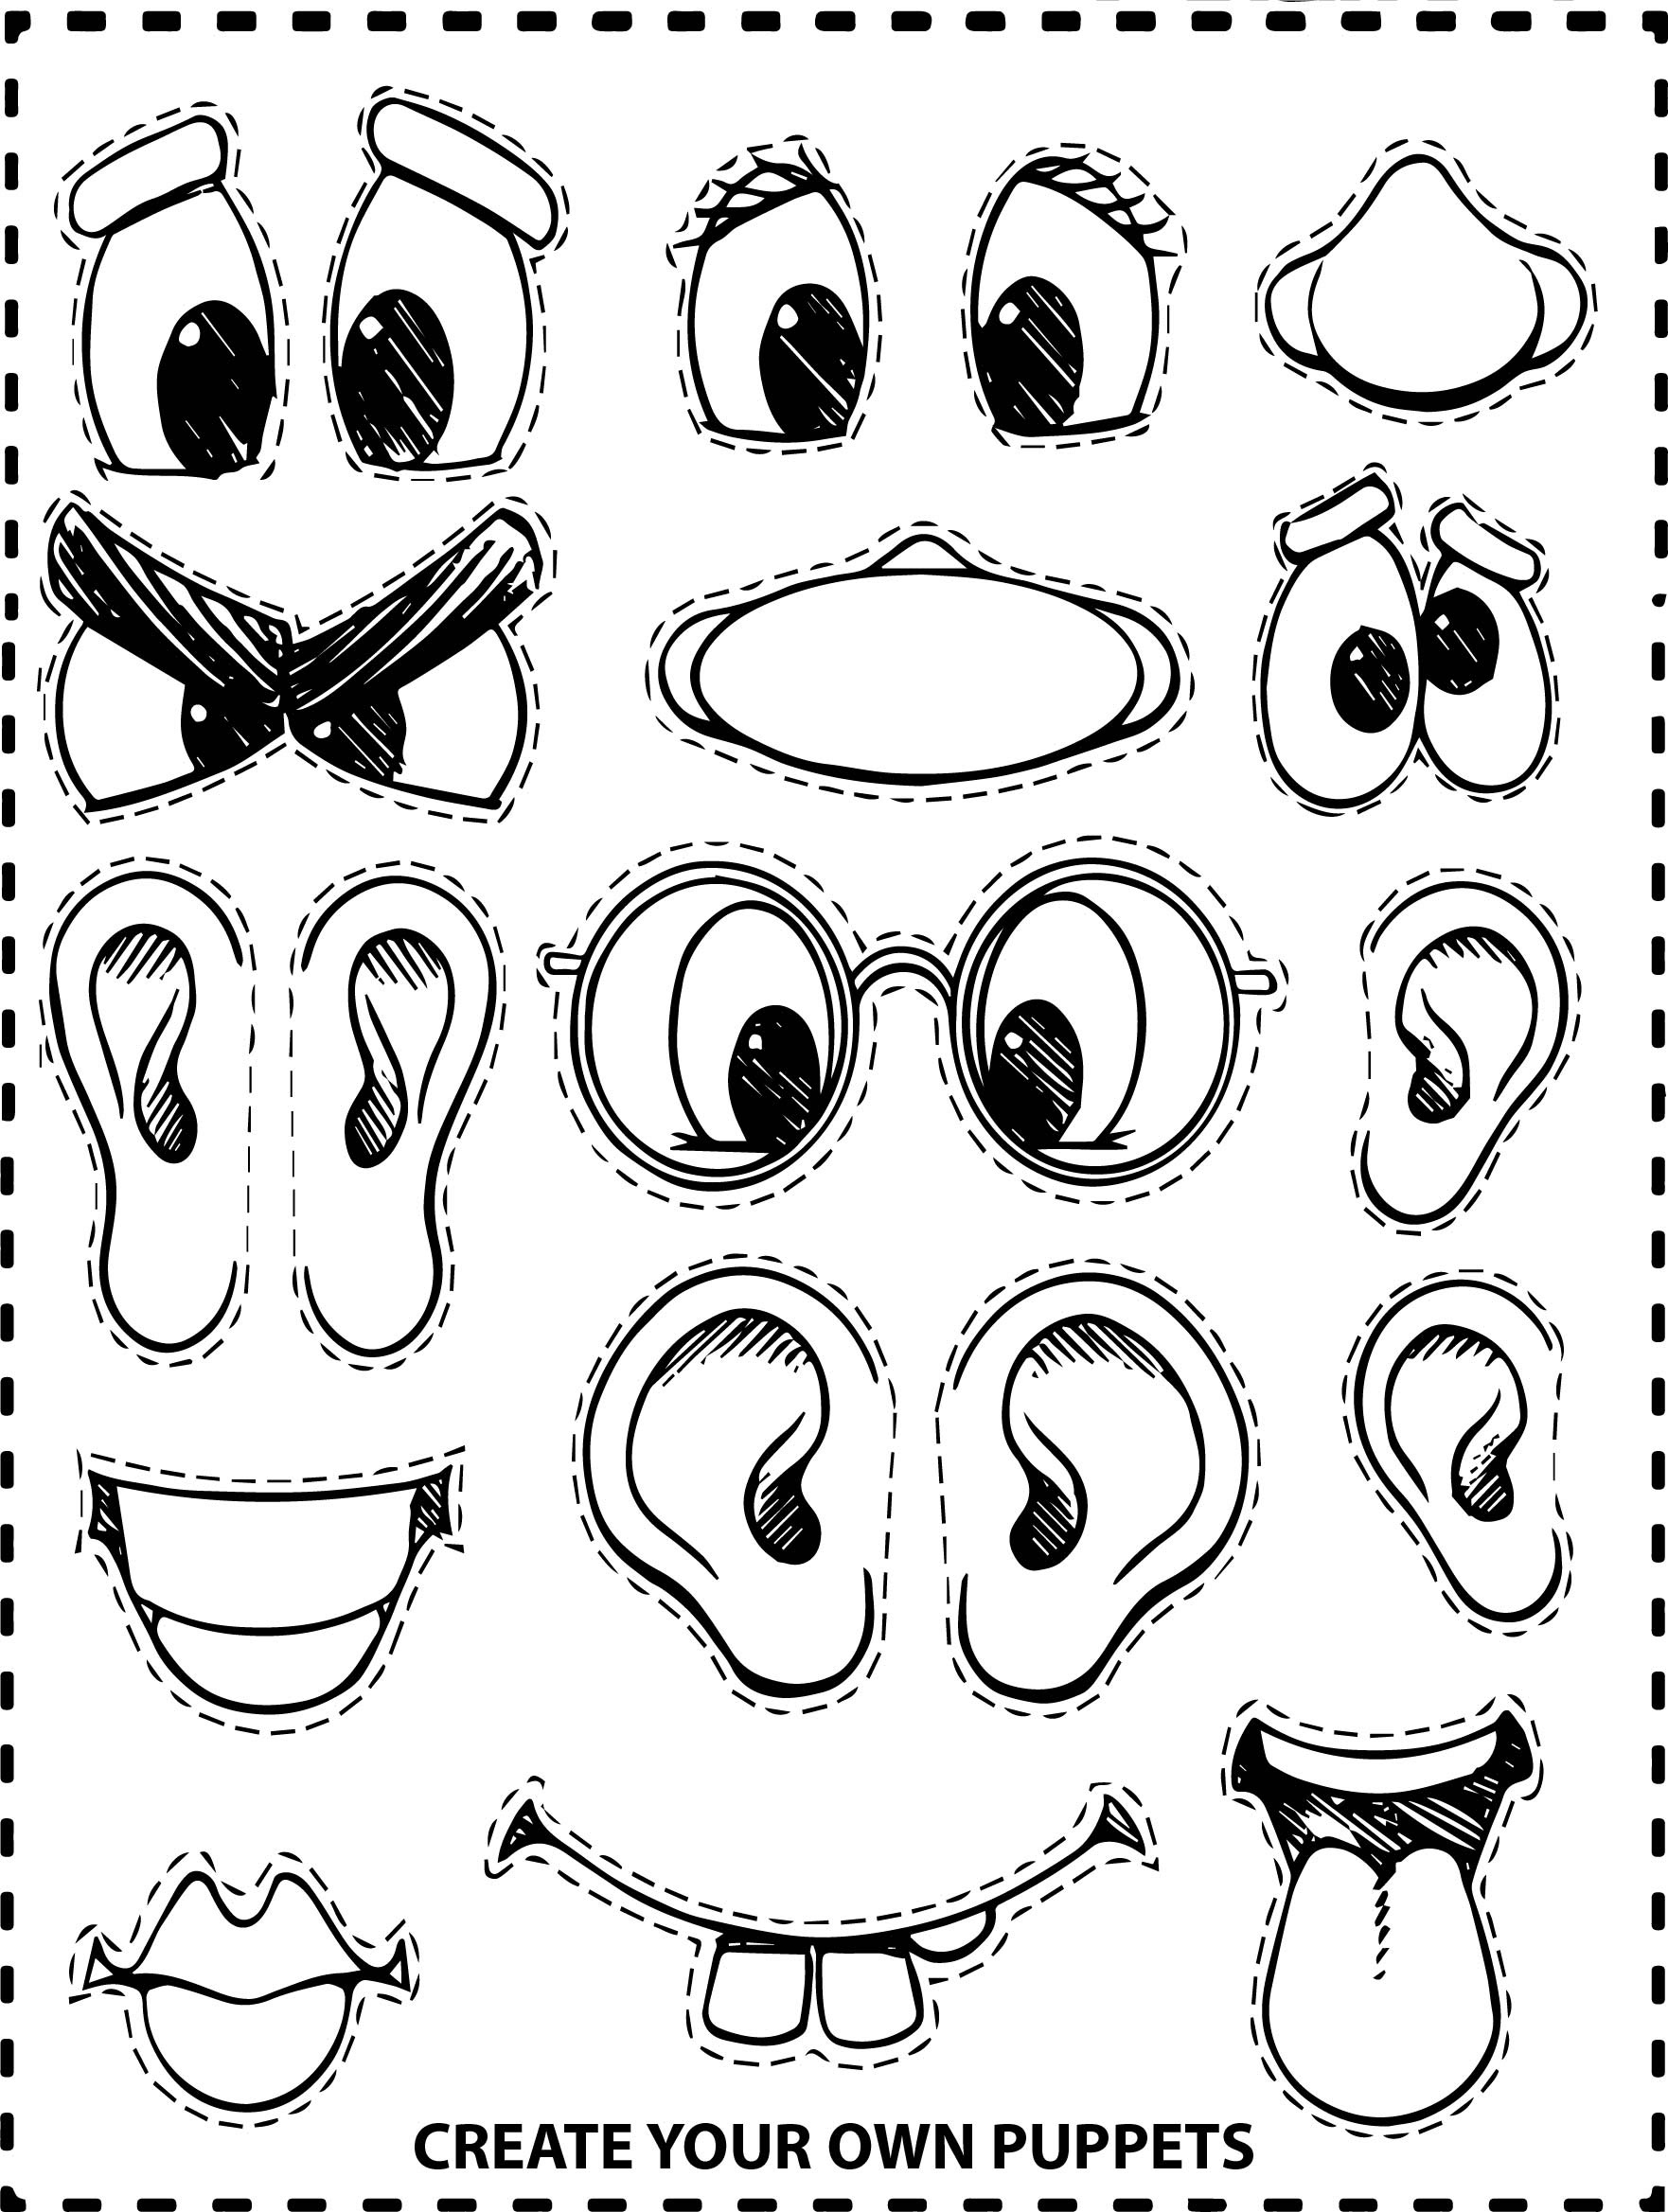 Create Your Own Face Coloring Page | Wecoloringpage.com